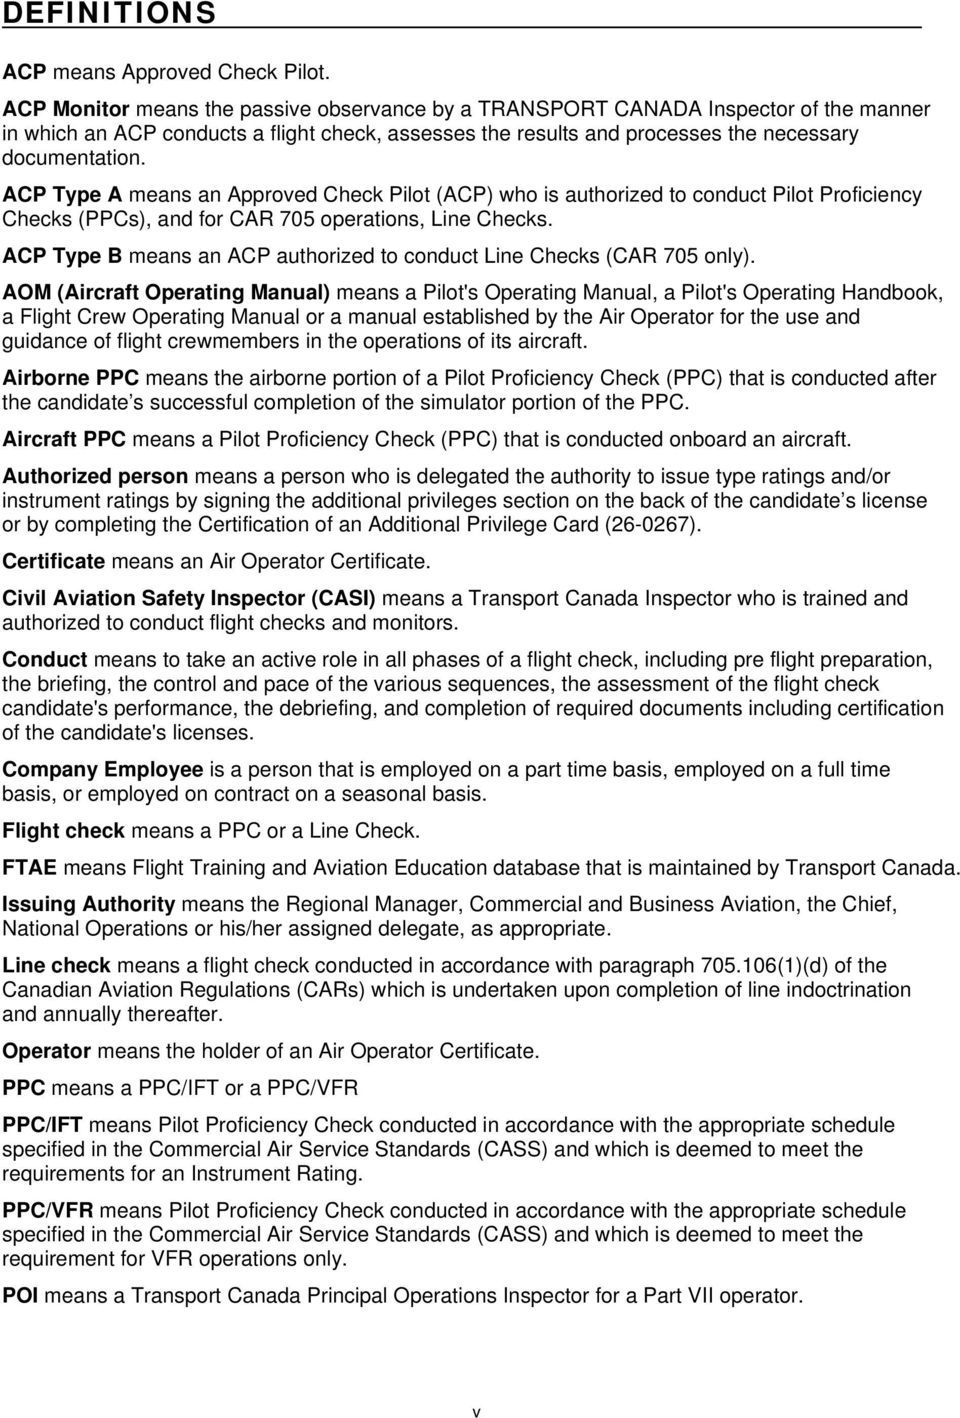 ACP Type A means an Approved Check Pilot (ACP) who is authorized to conduct Pilot Proficiency Checks (PPCs), and for CAR 705 operations, Line Checks.